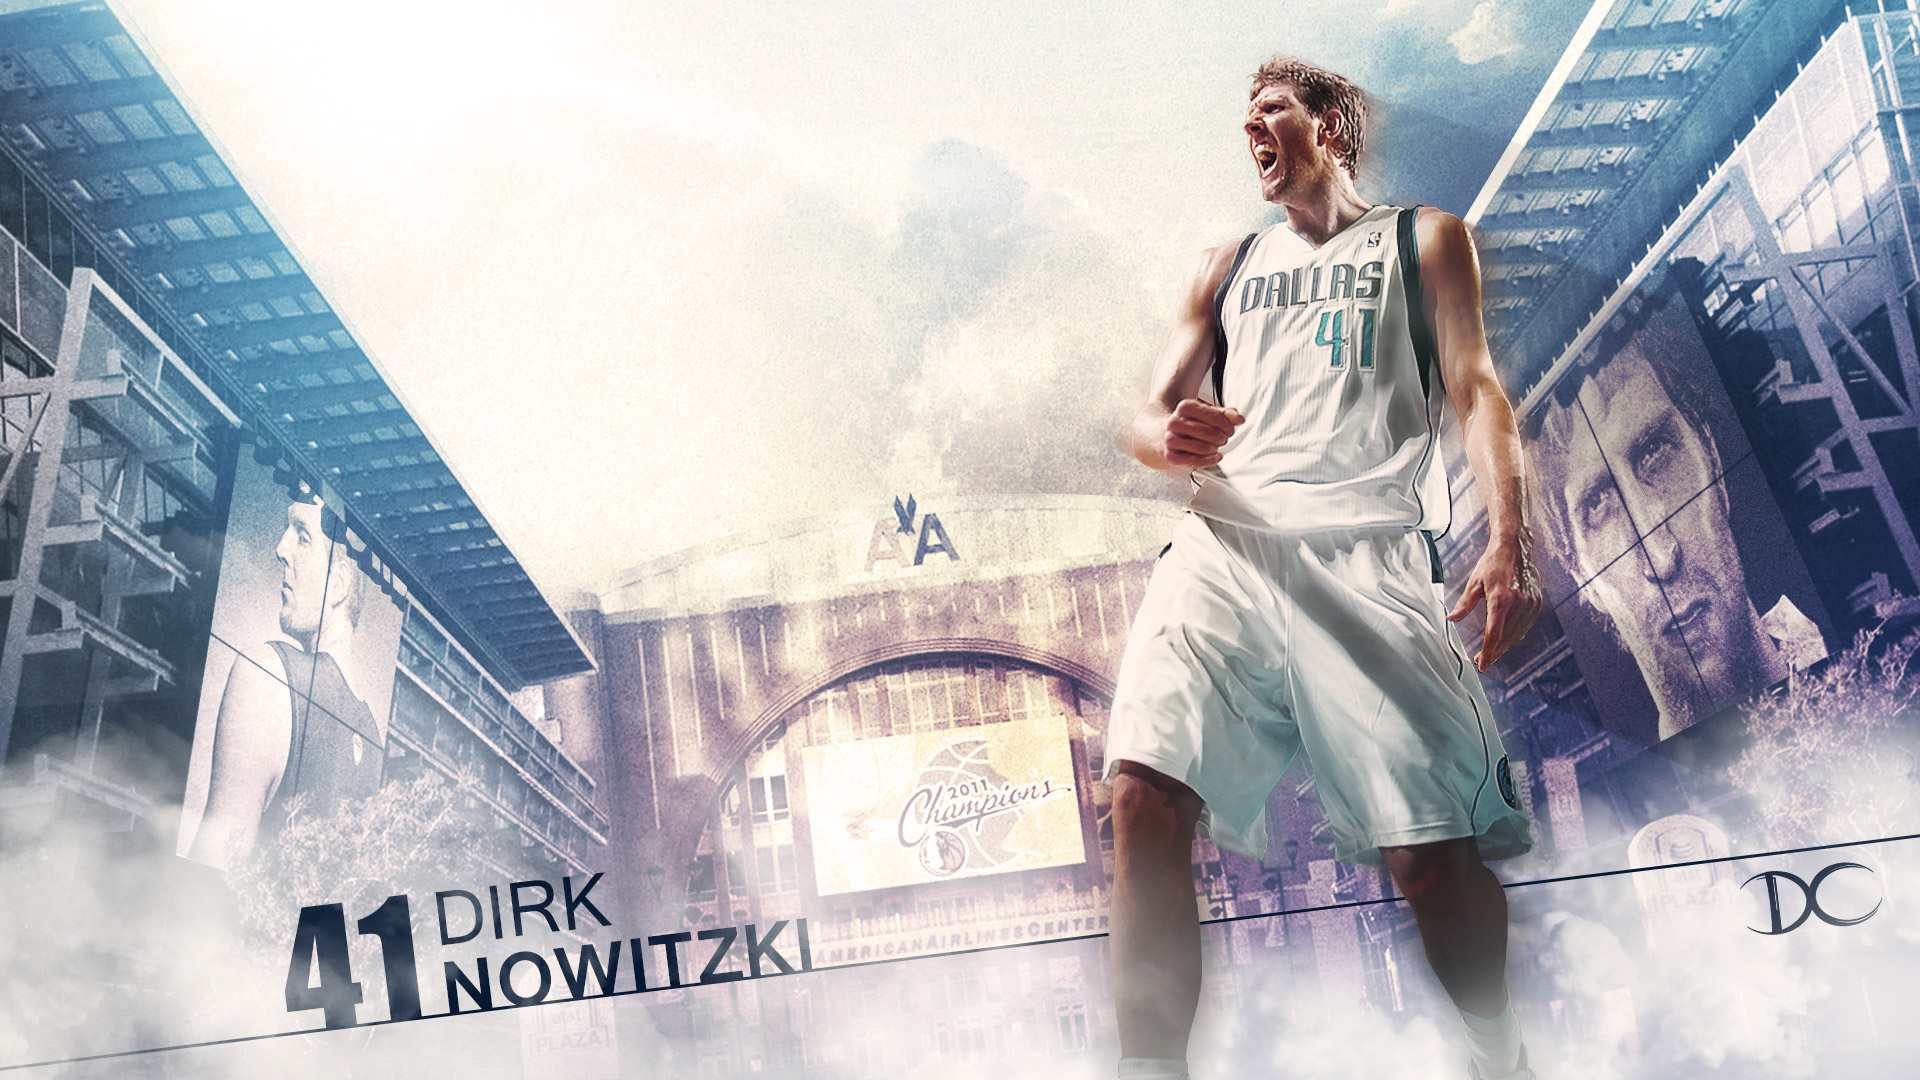 Dallas Stars Wallpaper Iphone Dirk Nowitzki Legacy 2014 Wallpaper Basketball